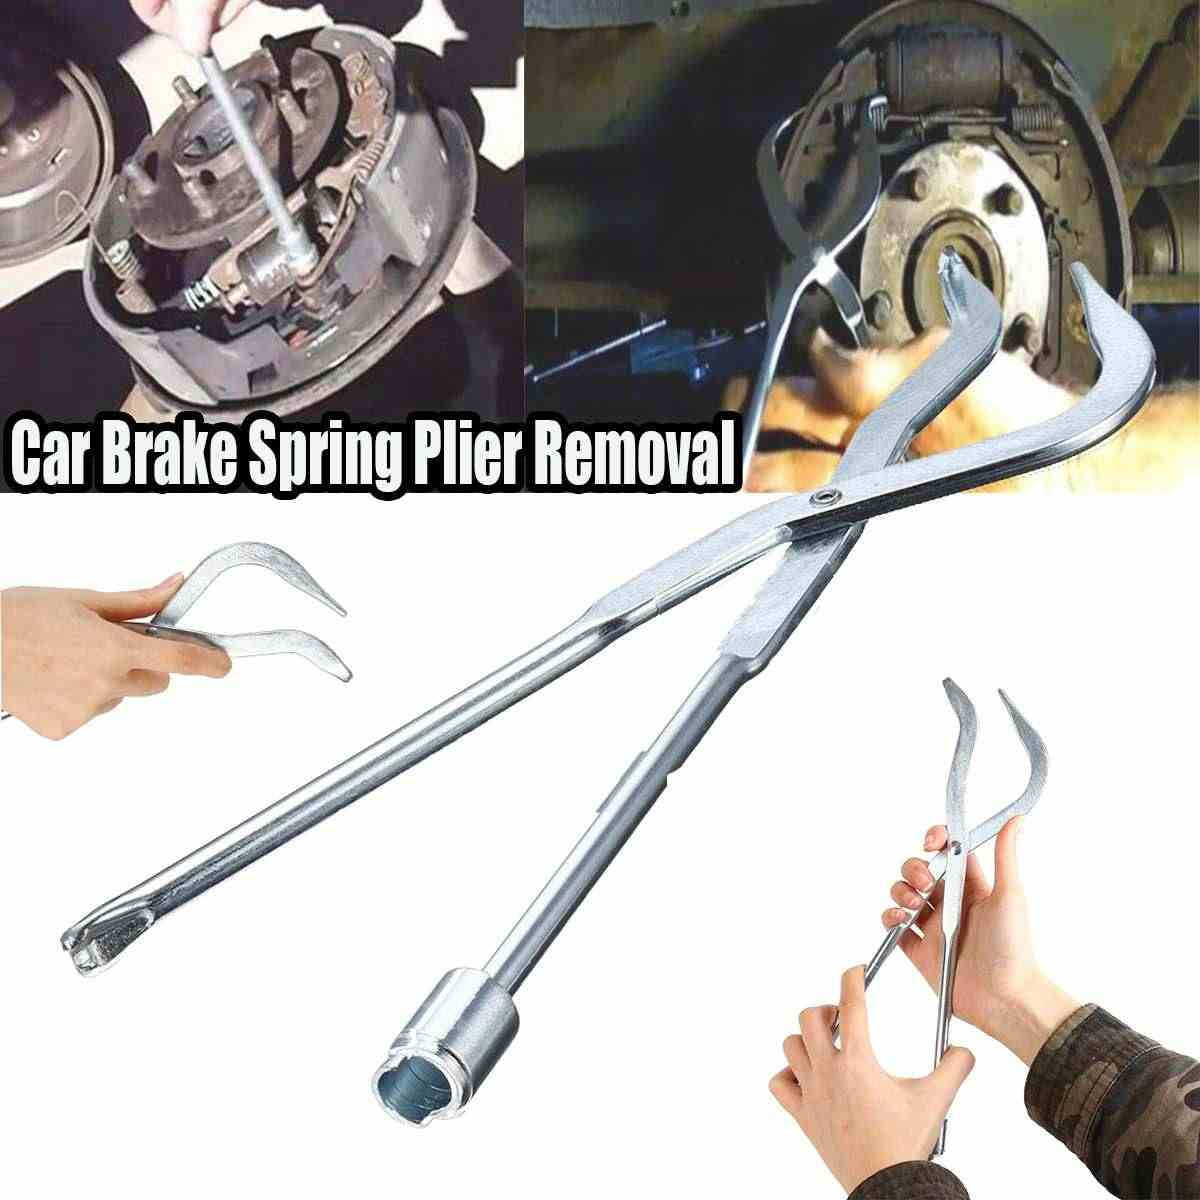 Brake Drum Pliers Brake Spring Plier Installer Removal Car Repair Hand Tool Automotive Tools Car Repair Brake System